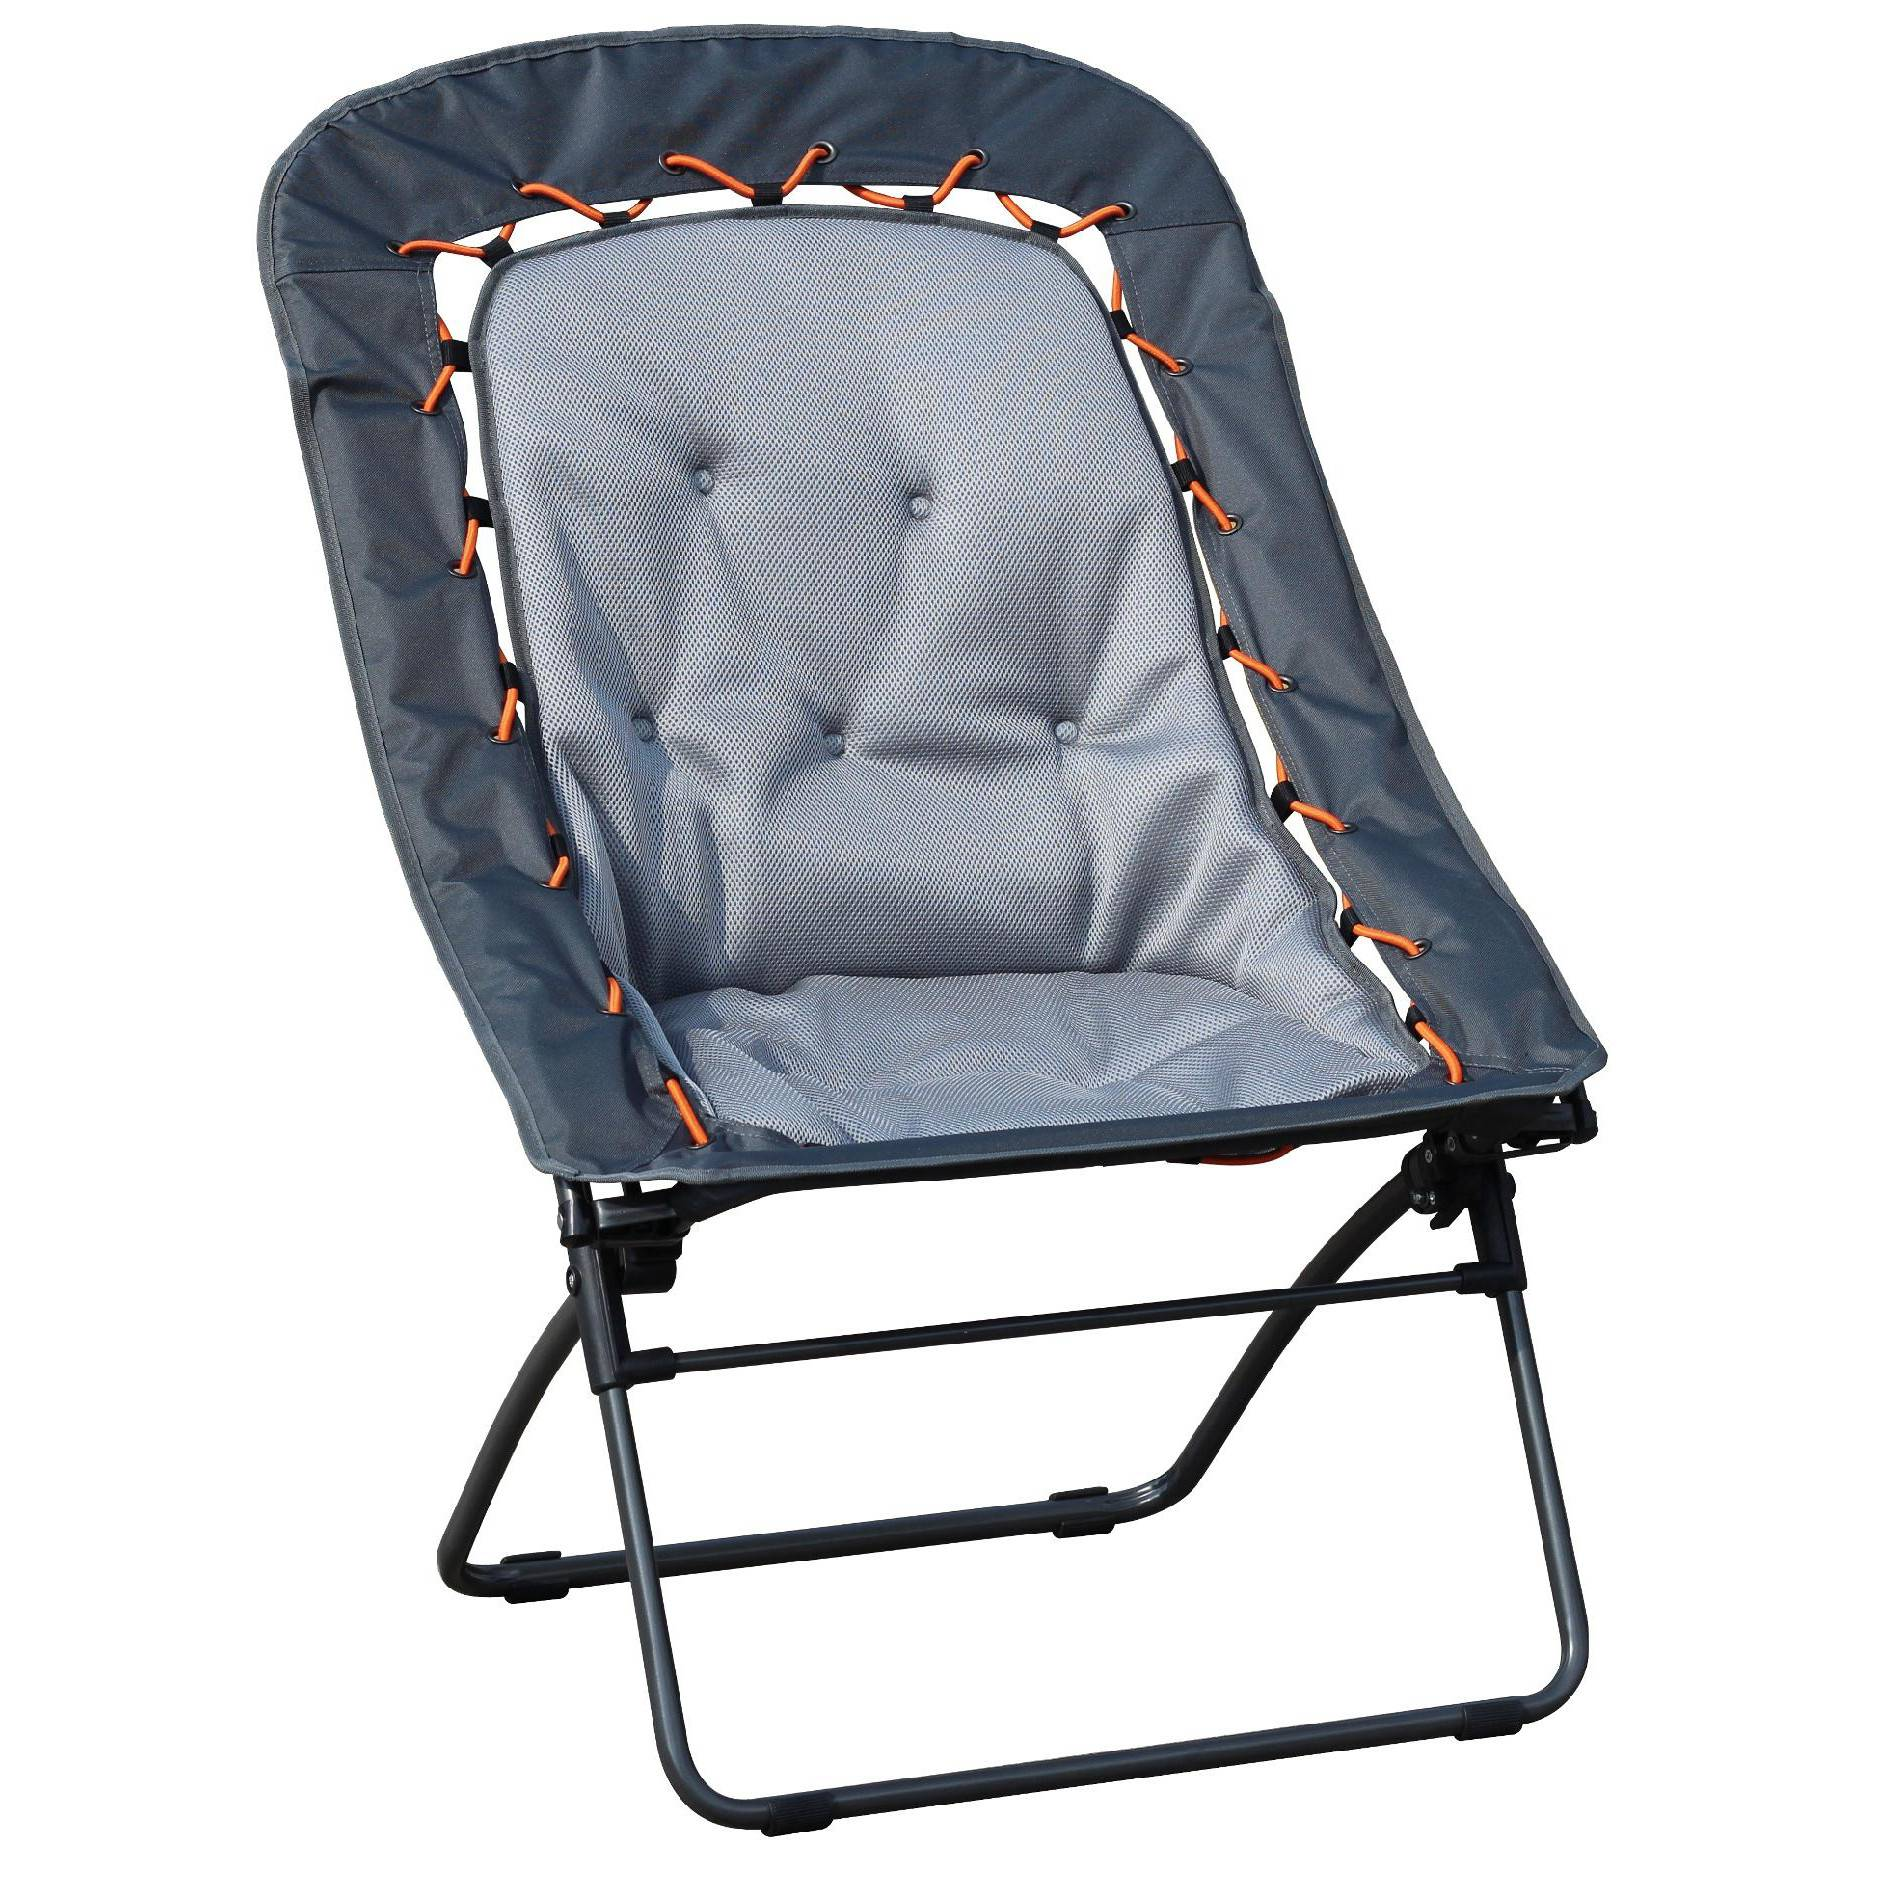 fortable Bunjo Bungee Chairs Trampoline Chair for Indoor